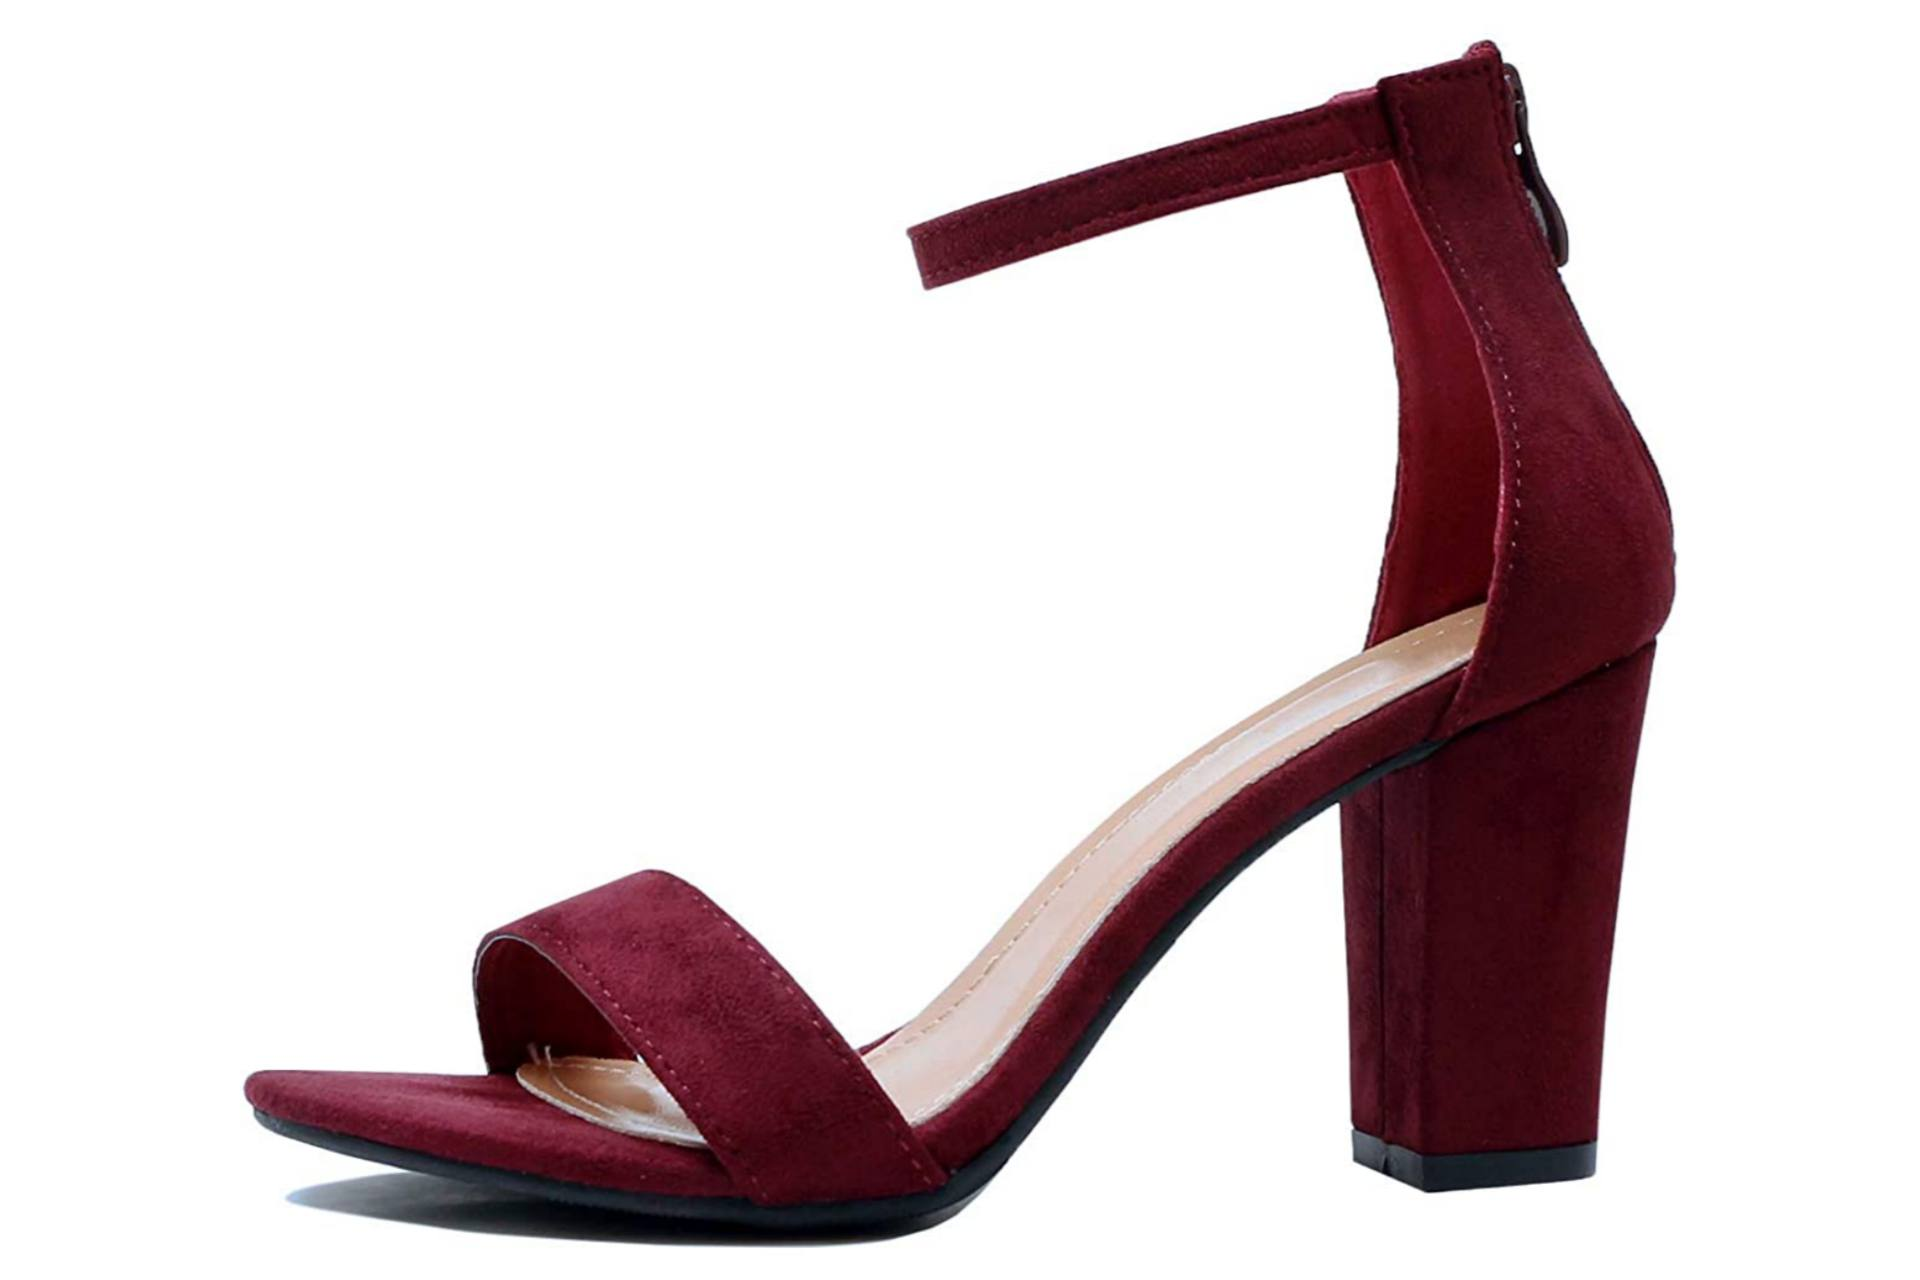 Top-rated stylish shoes for women